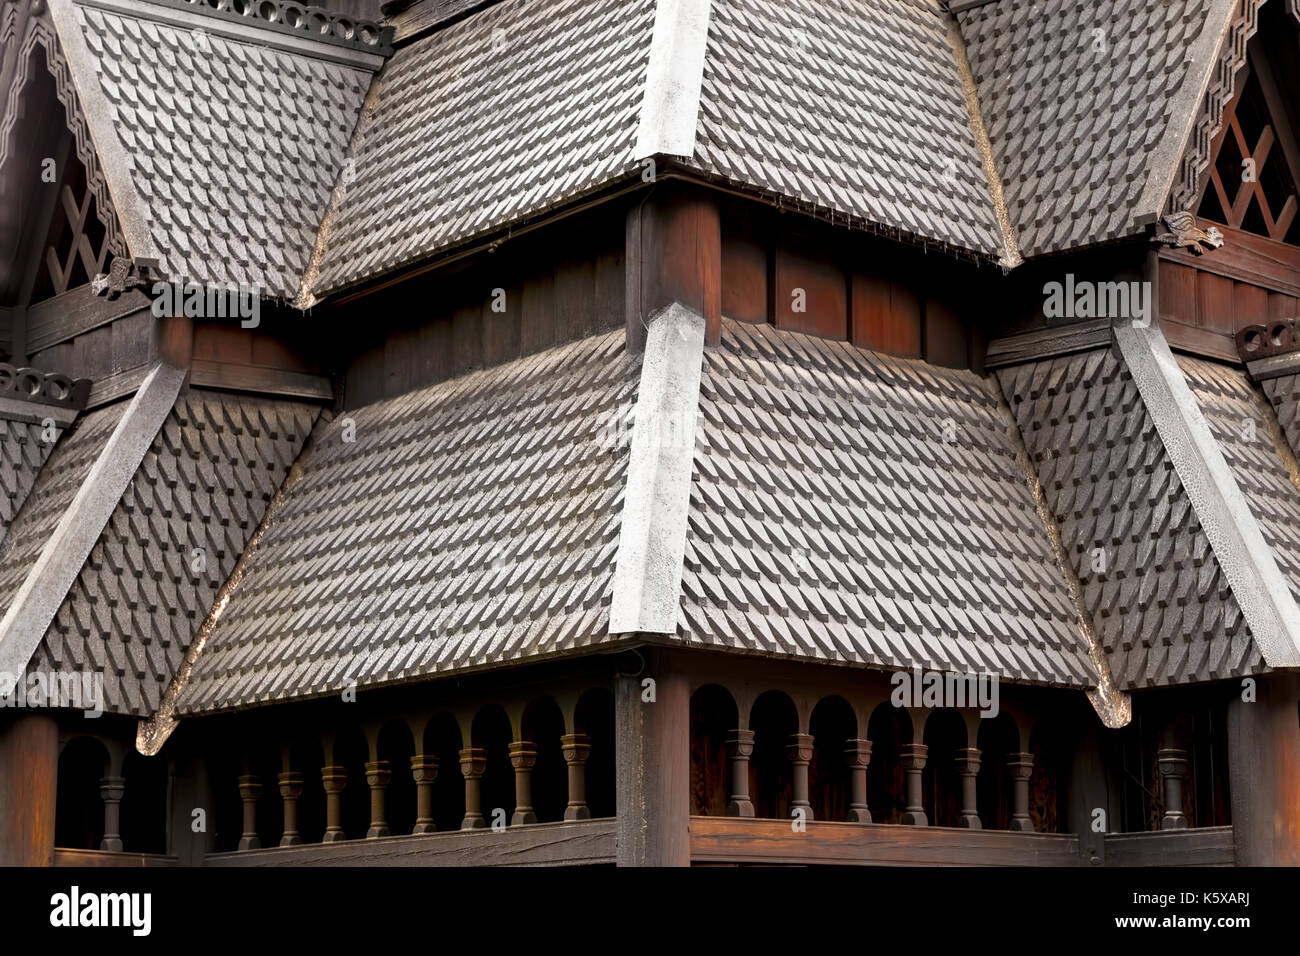 Close-up of the rooftop of the Stave Church (Stavkirke) in the NORSK FOLKEMUSEUM, an open air Museum of cultural history, Oslo, Bygdøy, Norway. - Stock Image